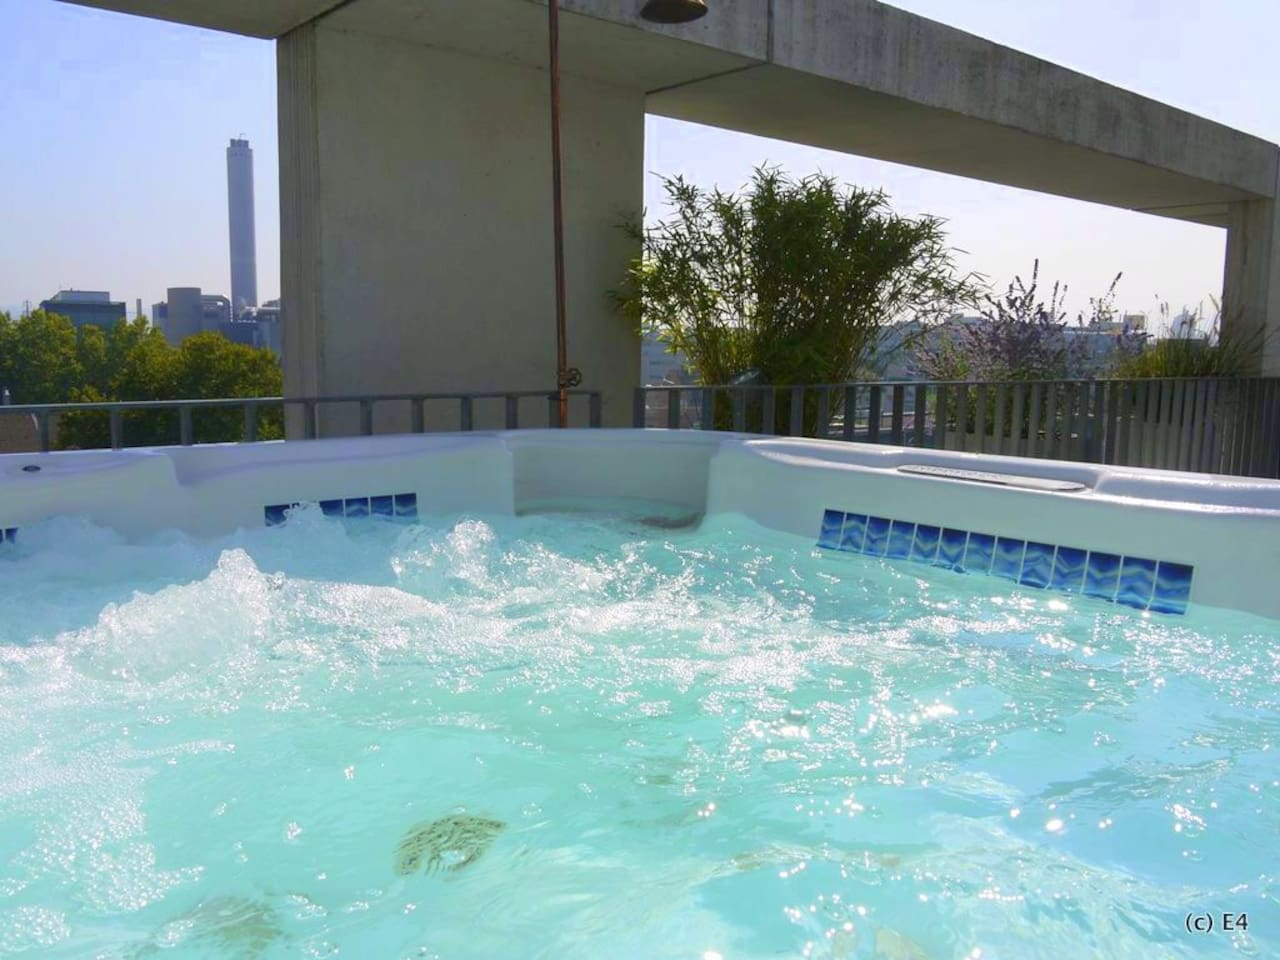 Pure bliss: heated whirlpool on rooftop all year round (sound included)